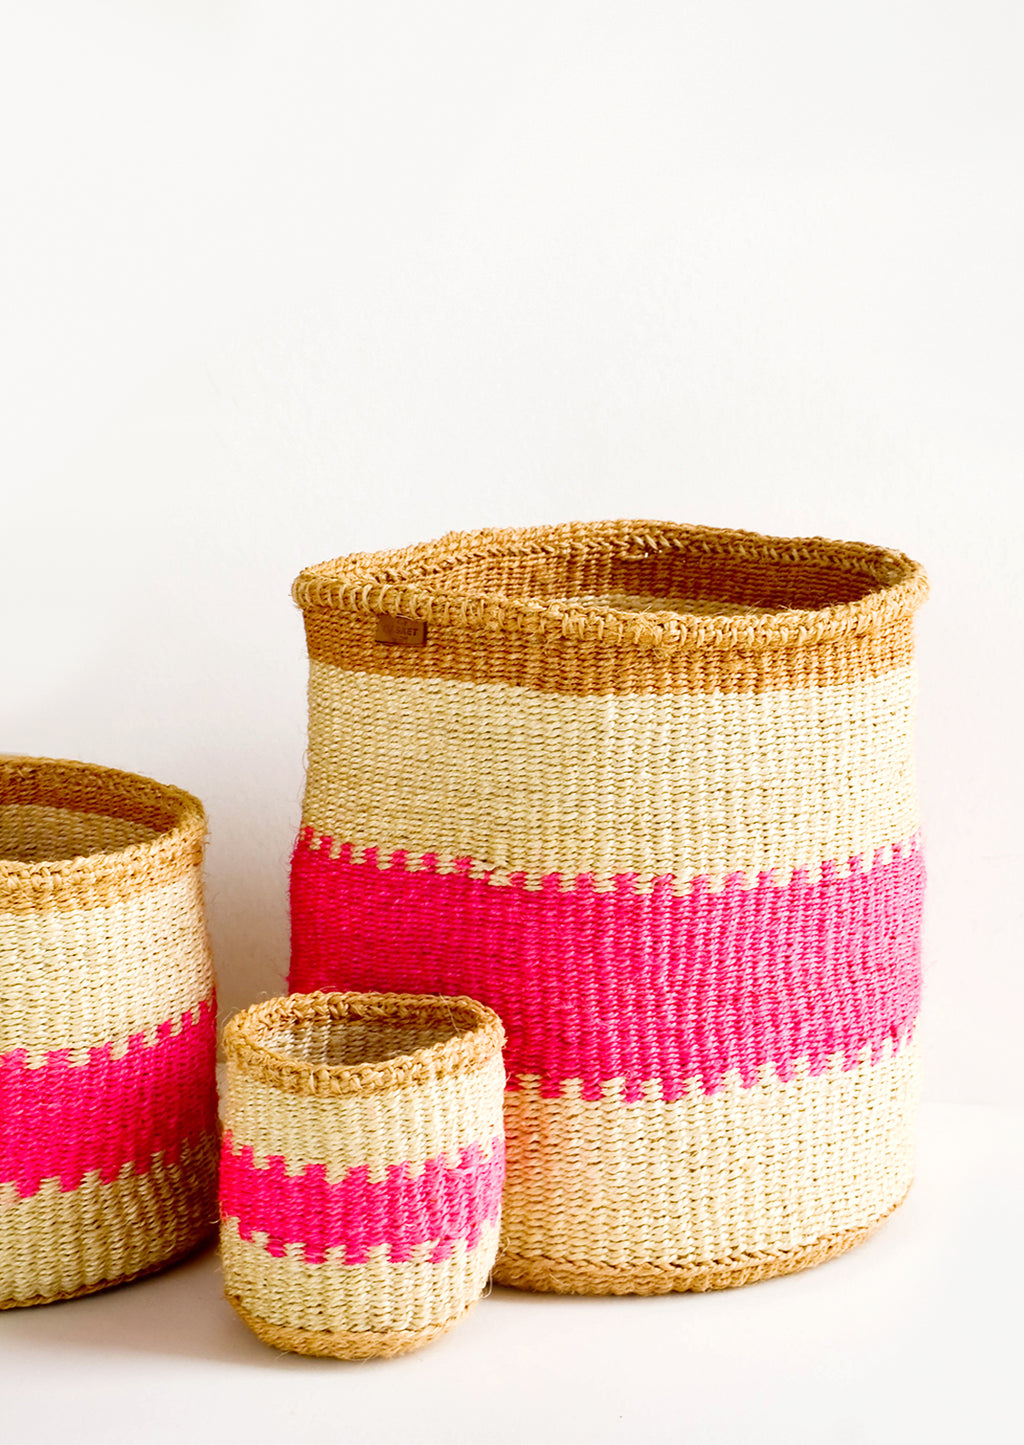 2: Woven sisal baskets in tan stripes with neon pink middle stripe